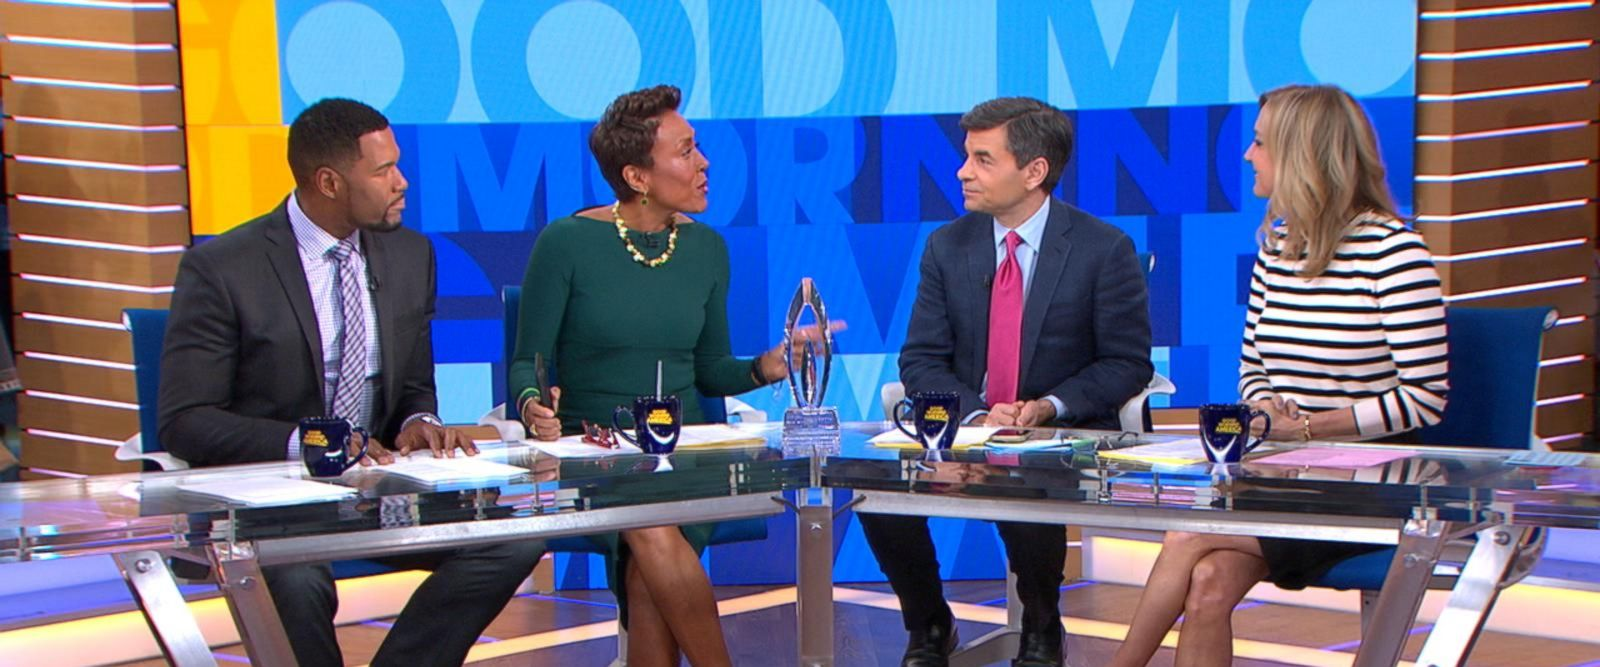 VIDEO: 'GMA' Thanks America for People's Choice Awards Win